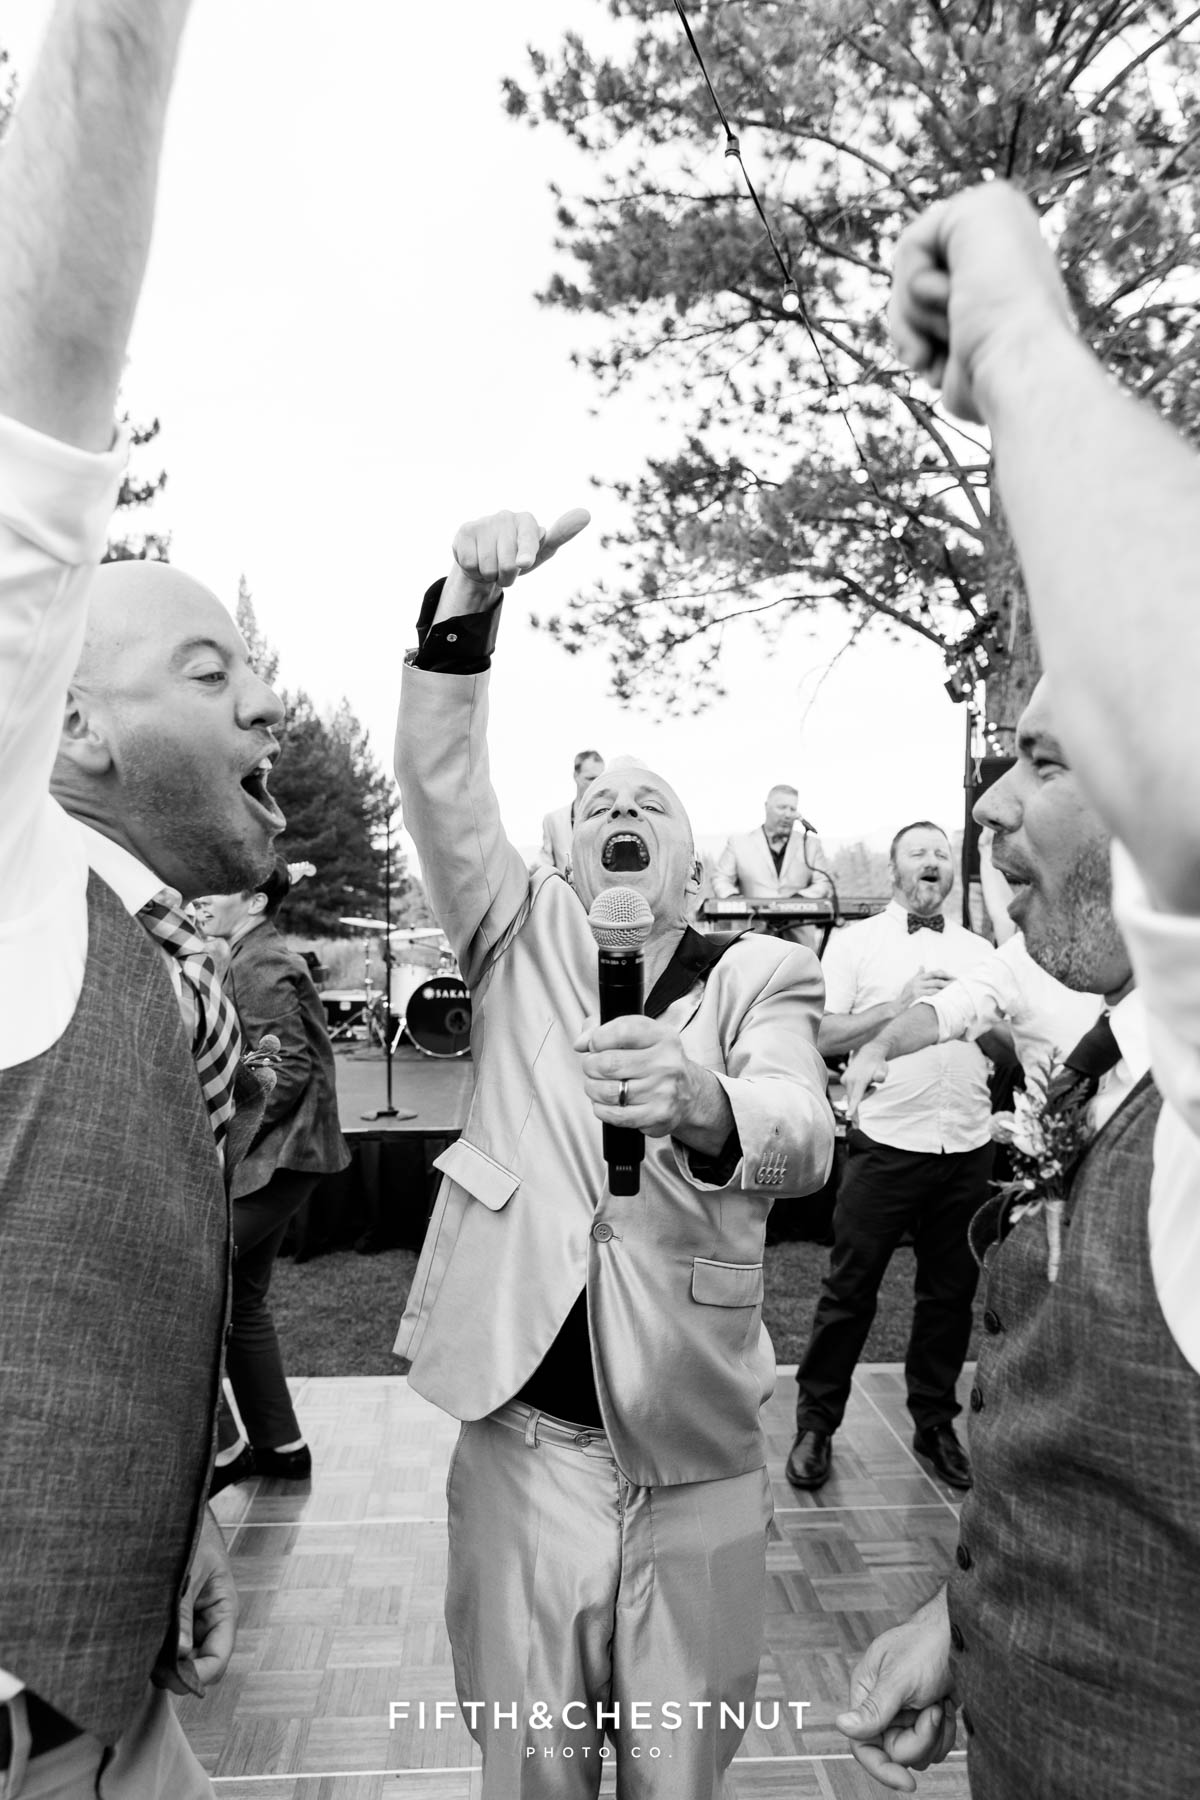 Lead singer of wonderbread5 gets grooms involved for a song during their gay wedding at PJ's at Gray's Crossing in Truckee